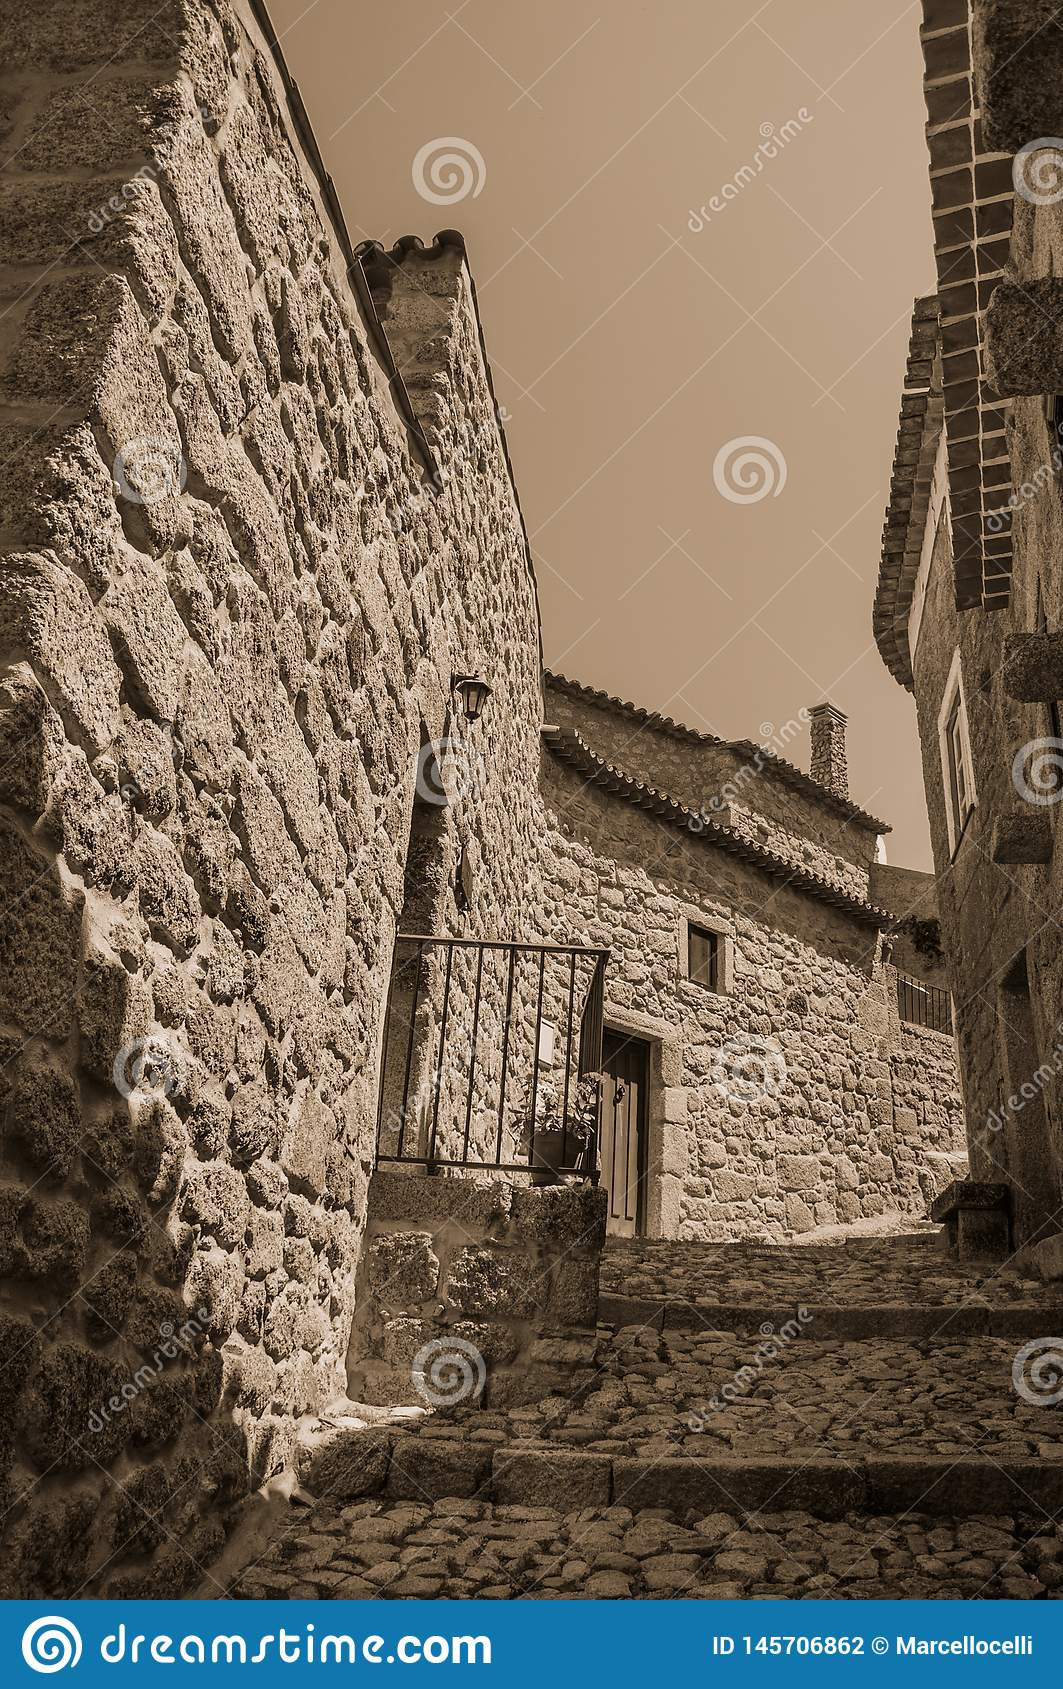 Old stone houses in deserted alley with steps at Monsanto